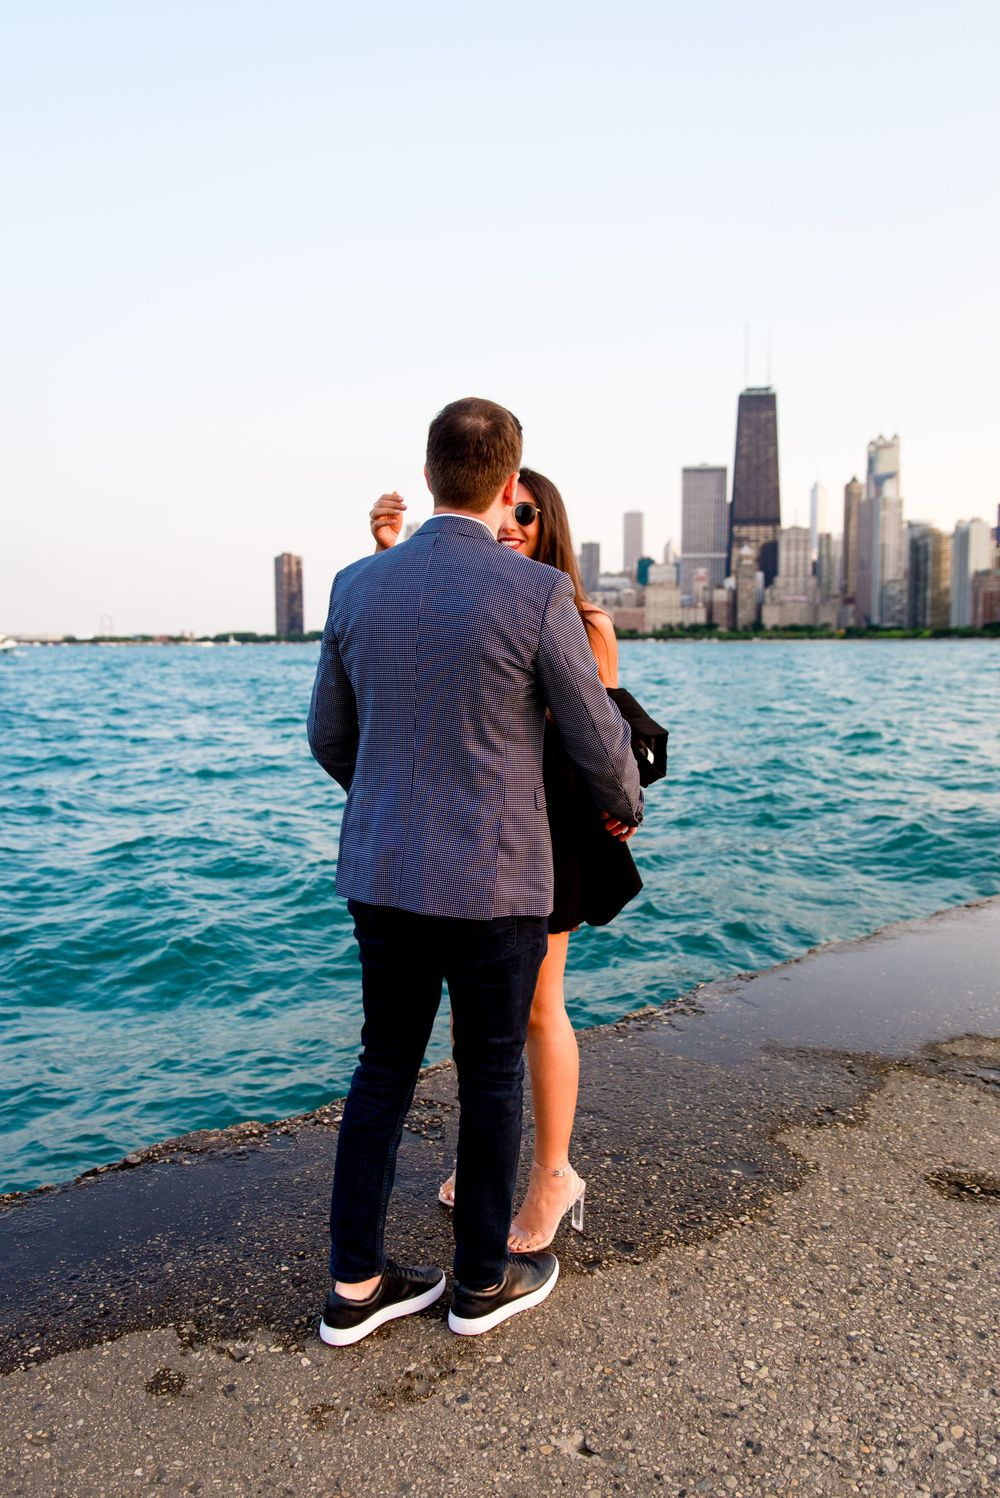 man going to hug woman after he proposed at North Avenue Beach pier